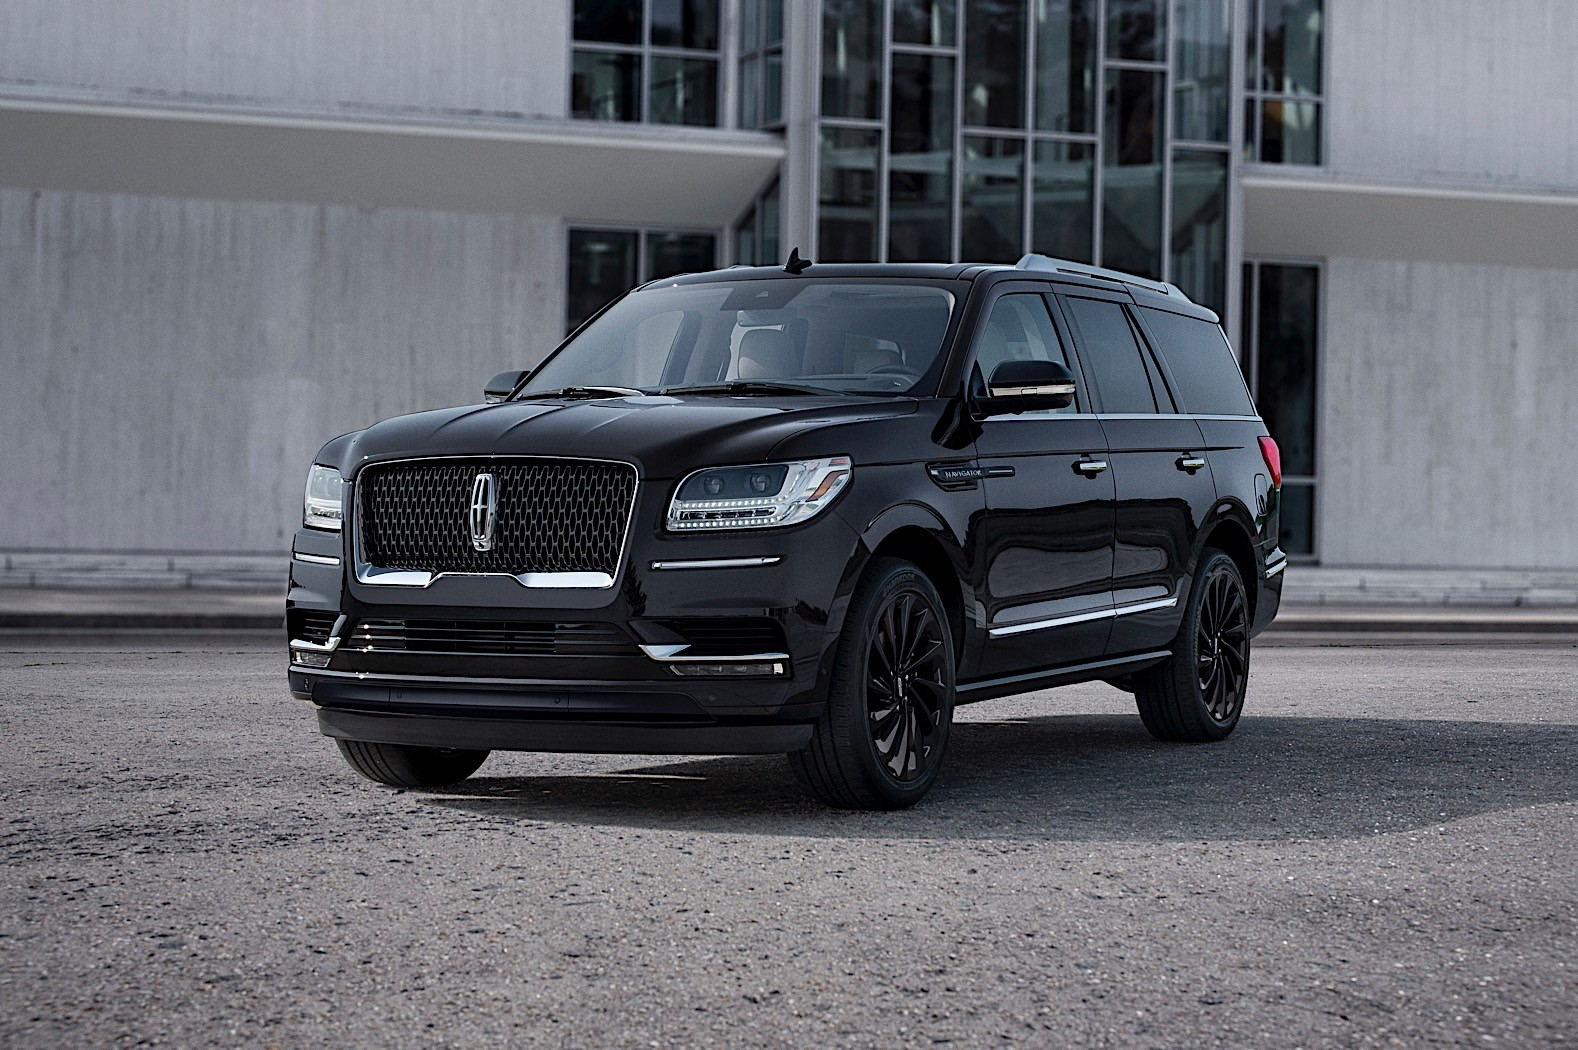 2020 lincoln navigator can now be unlocked and started